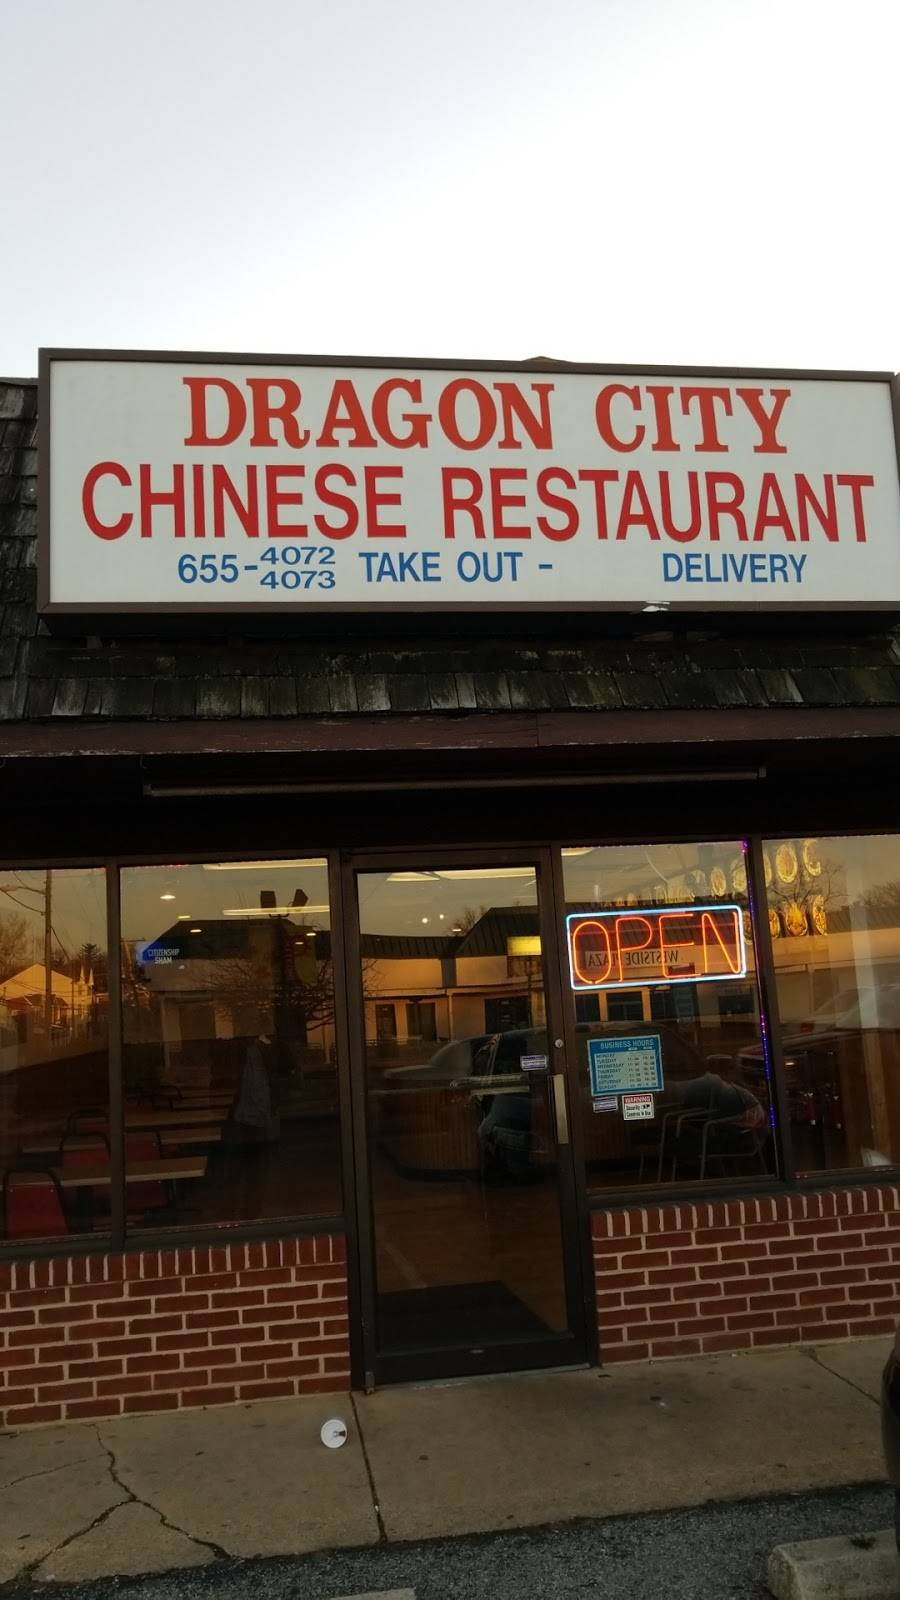 Dragon City II | meal delivery | 2800 Lancaster Ave #1, Wilmington, DE 19805, USA | 3026554072 OR +1 302-655-4072